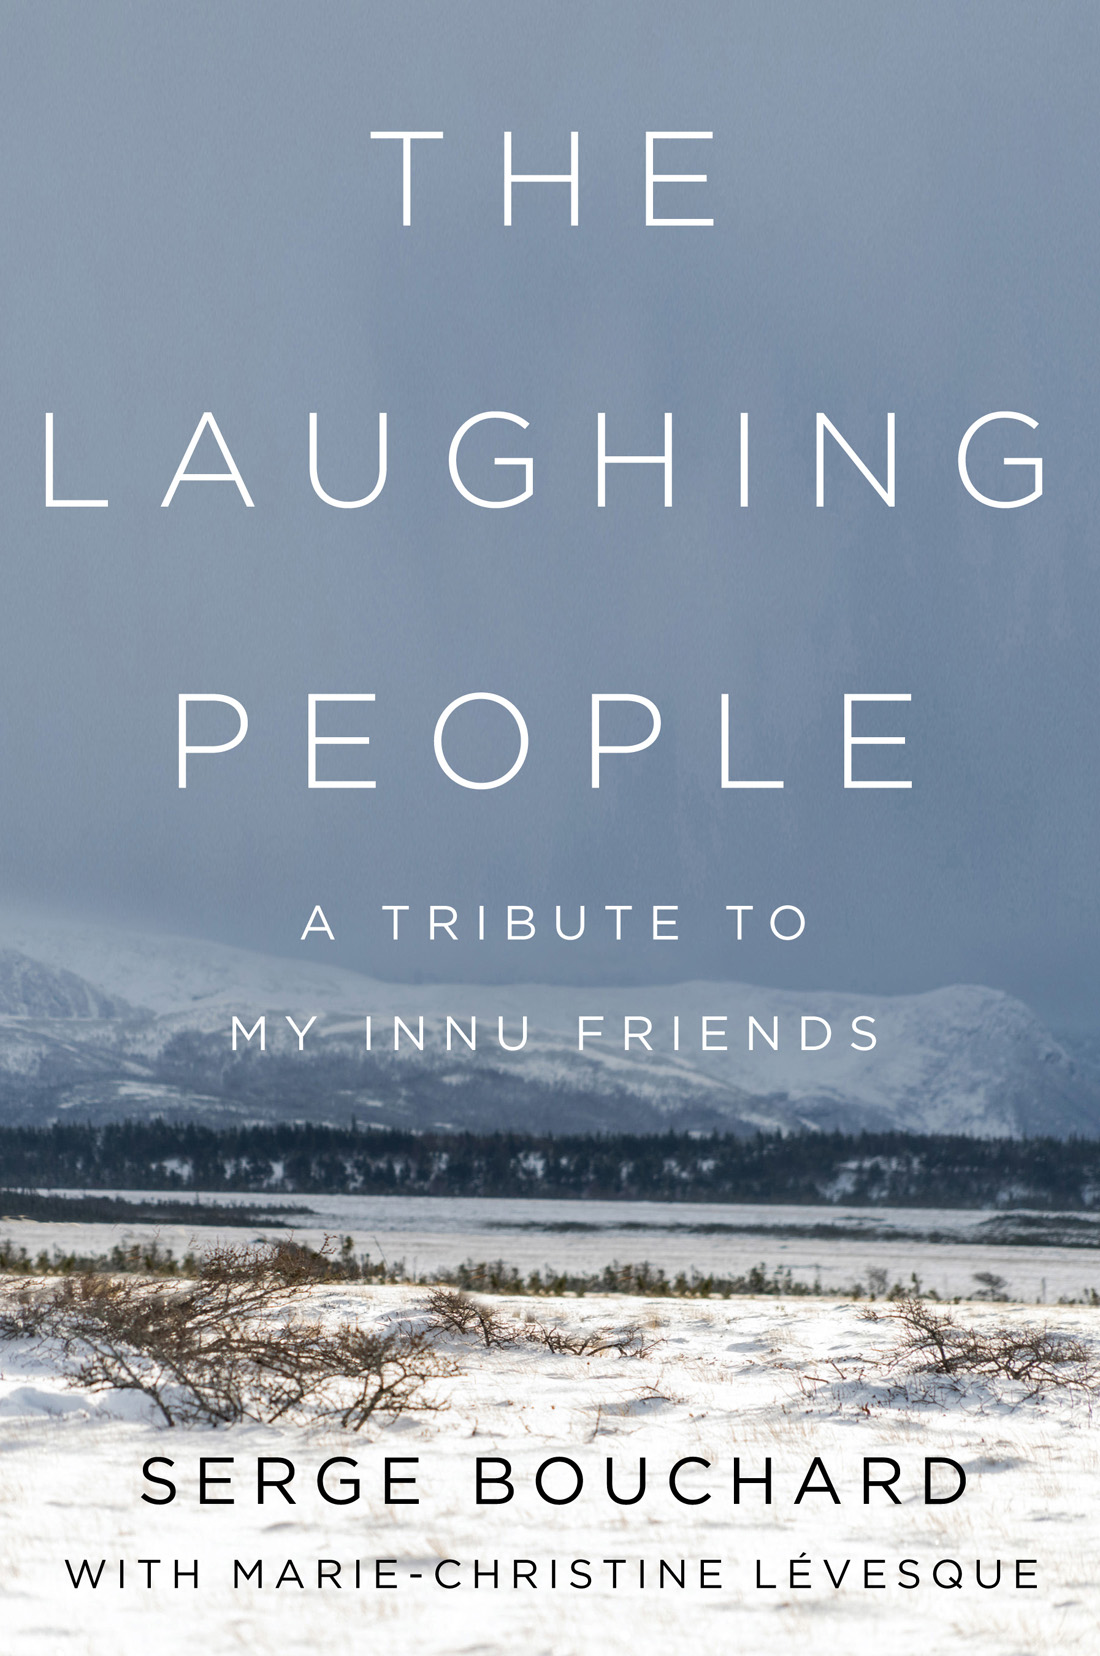 The Laughing People: A Tribute to My Innu Friends